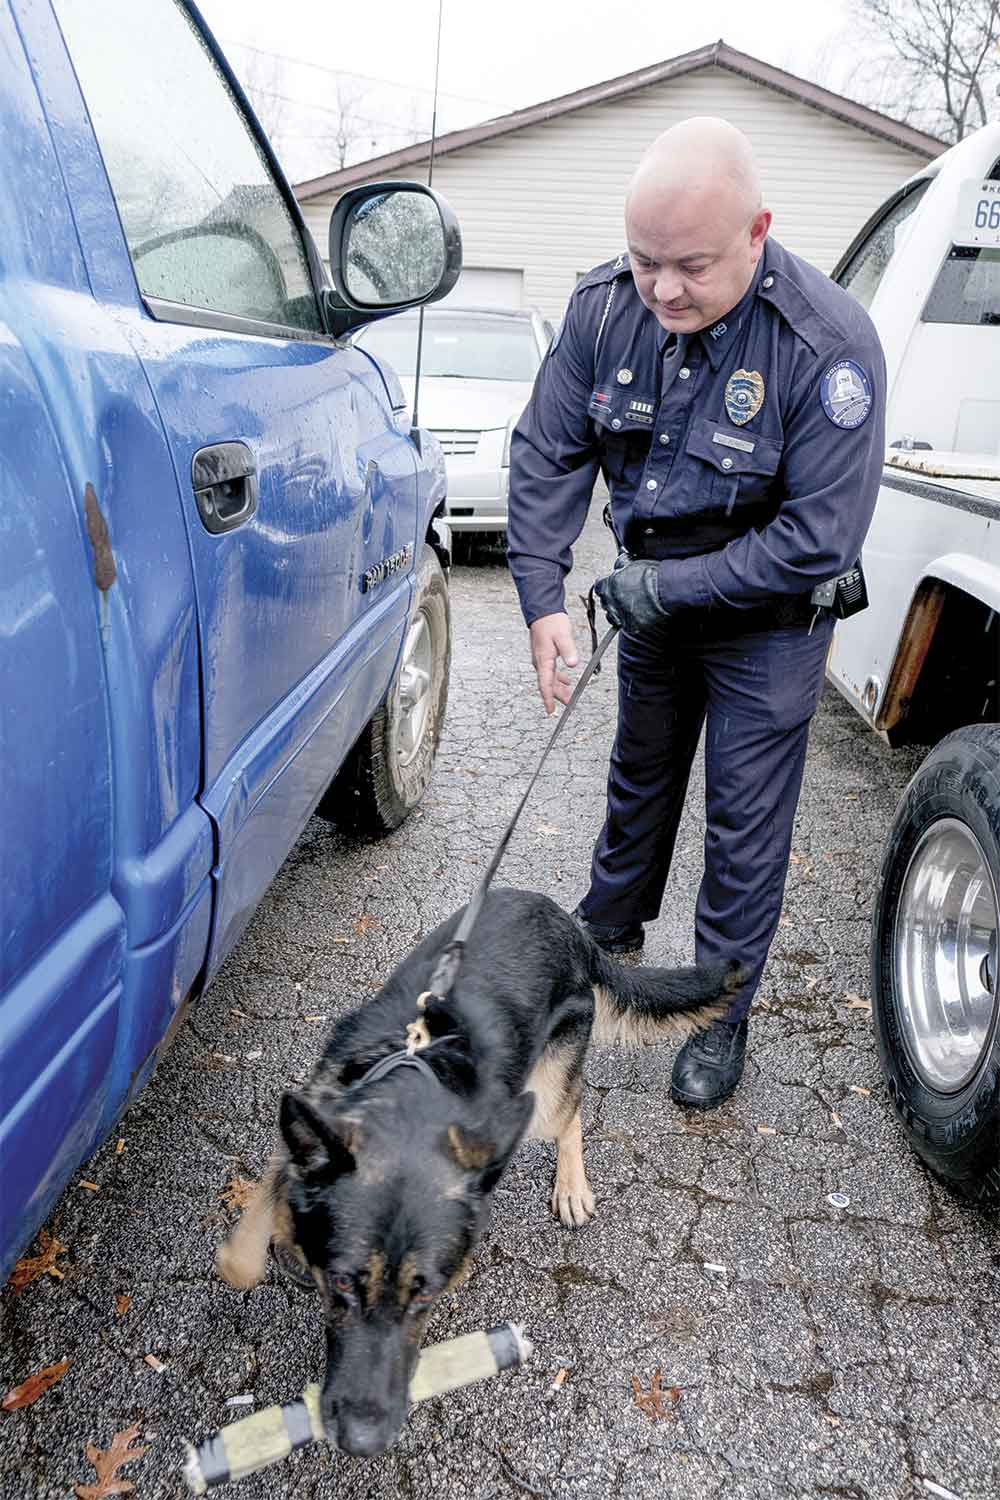 Mount Sterling Police Officer Jason Perry rewards K-9 Dexter after successfully alerting on drugs hidden inside this blue truck. Perry is MSPD's first K-9 officer, and he says he and Dexter work hard and train consistently to ensure the K-9 program's success. (Photo by Jim Robertson)